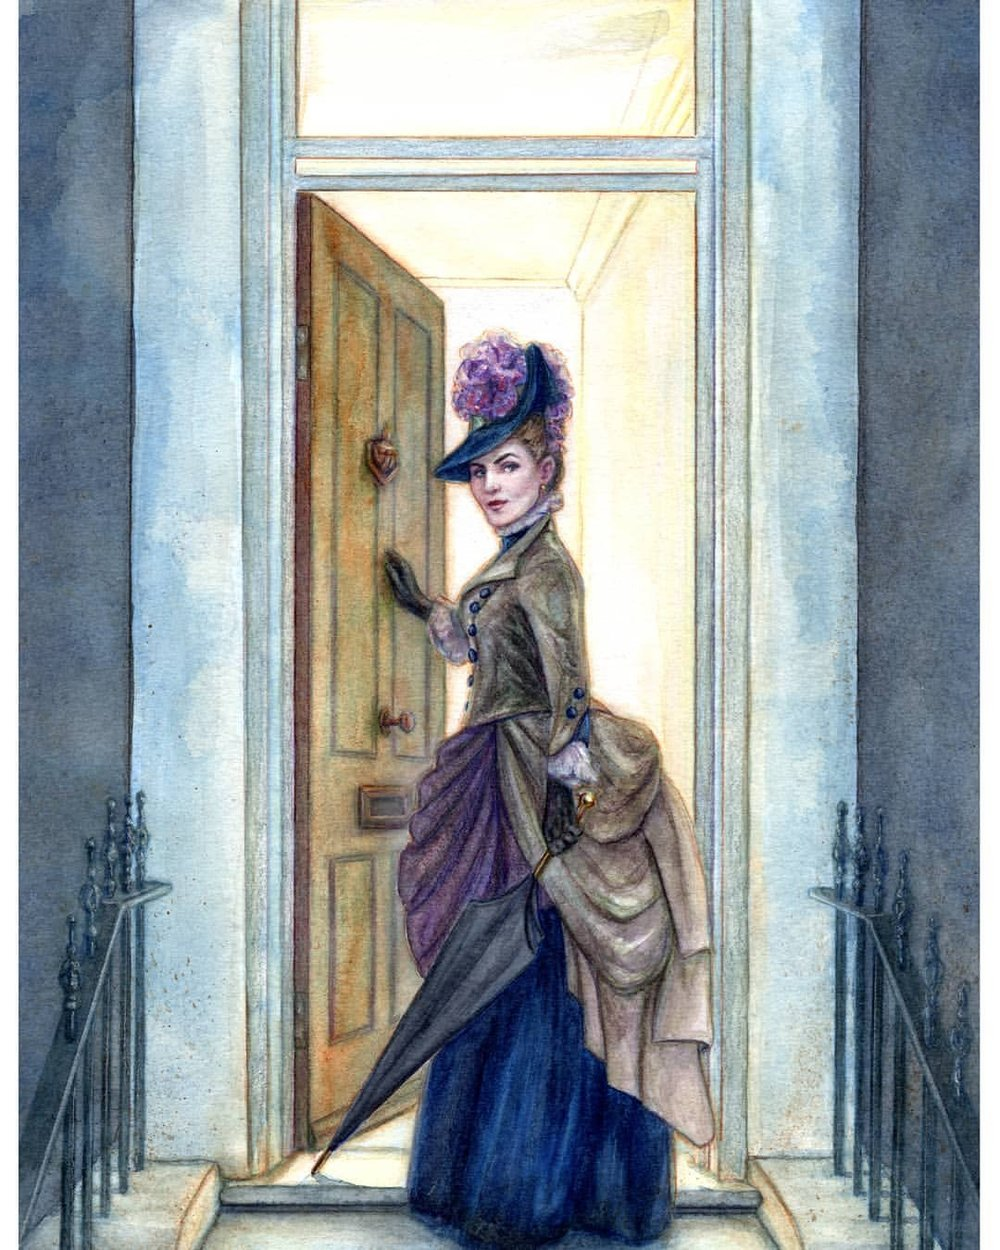 To celebrate International Women's Day here is the cunning and lovely Irene Adler from A Scandal in Bohemia by Arthur Conan Doyle. The illustration was part of my submission for the Folio Society Book Illustration Competition which unfortunately I didn't place. So many amazing artists in that competition 😍    Watercolour, pencil and gouache on 300gsm cold press watercolour paper.    #sherlock #arthurconandoyle #ireneadler #watercolor #illustration #victorianfashion  #thatwoman #internationalwomensday #kunst #belindaillustrates #australianartist #melbourneartist #melbourneillustrator